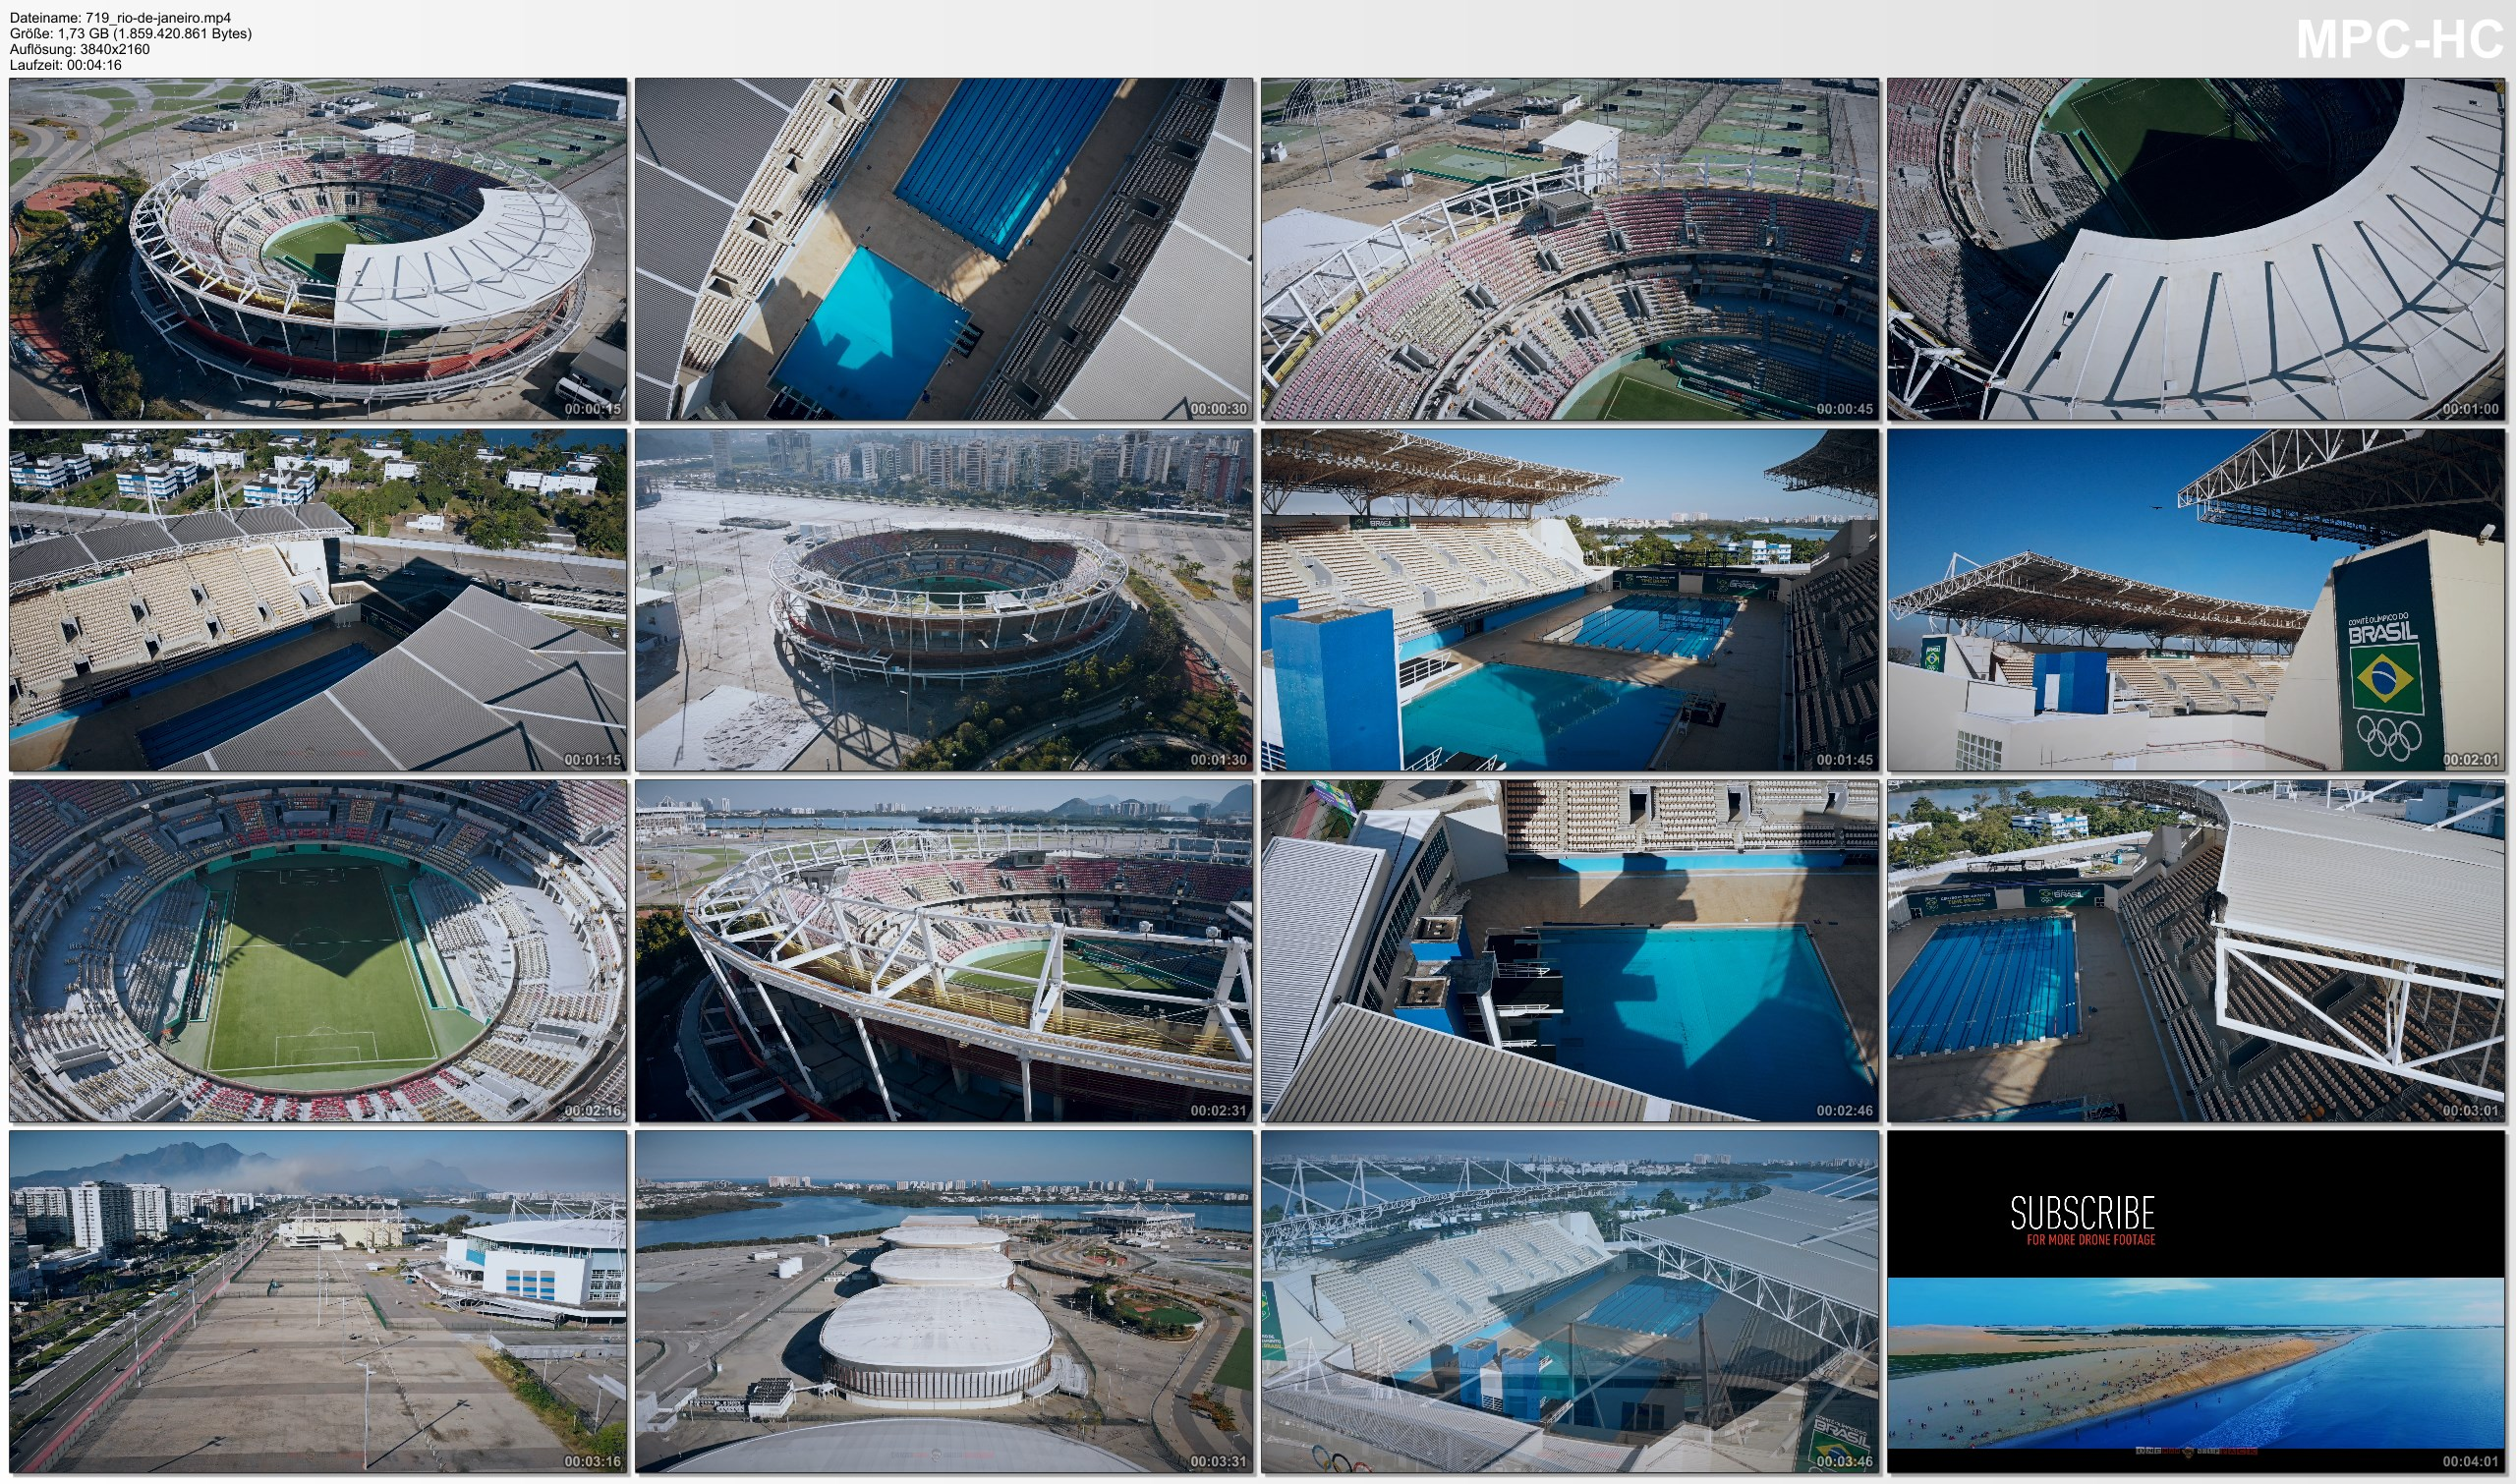 Drone Pictures from Video 【4K】Barra Olympic Park from Above - RIO DE JANEIRO 2020   Cinematic Wolf Aerial™ Drone Film